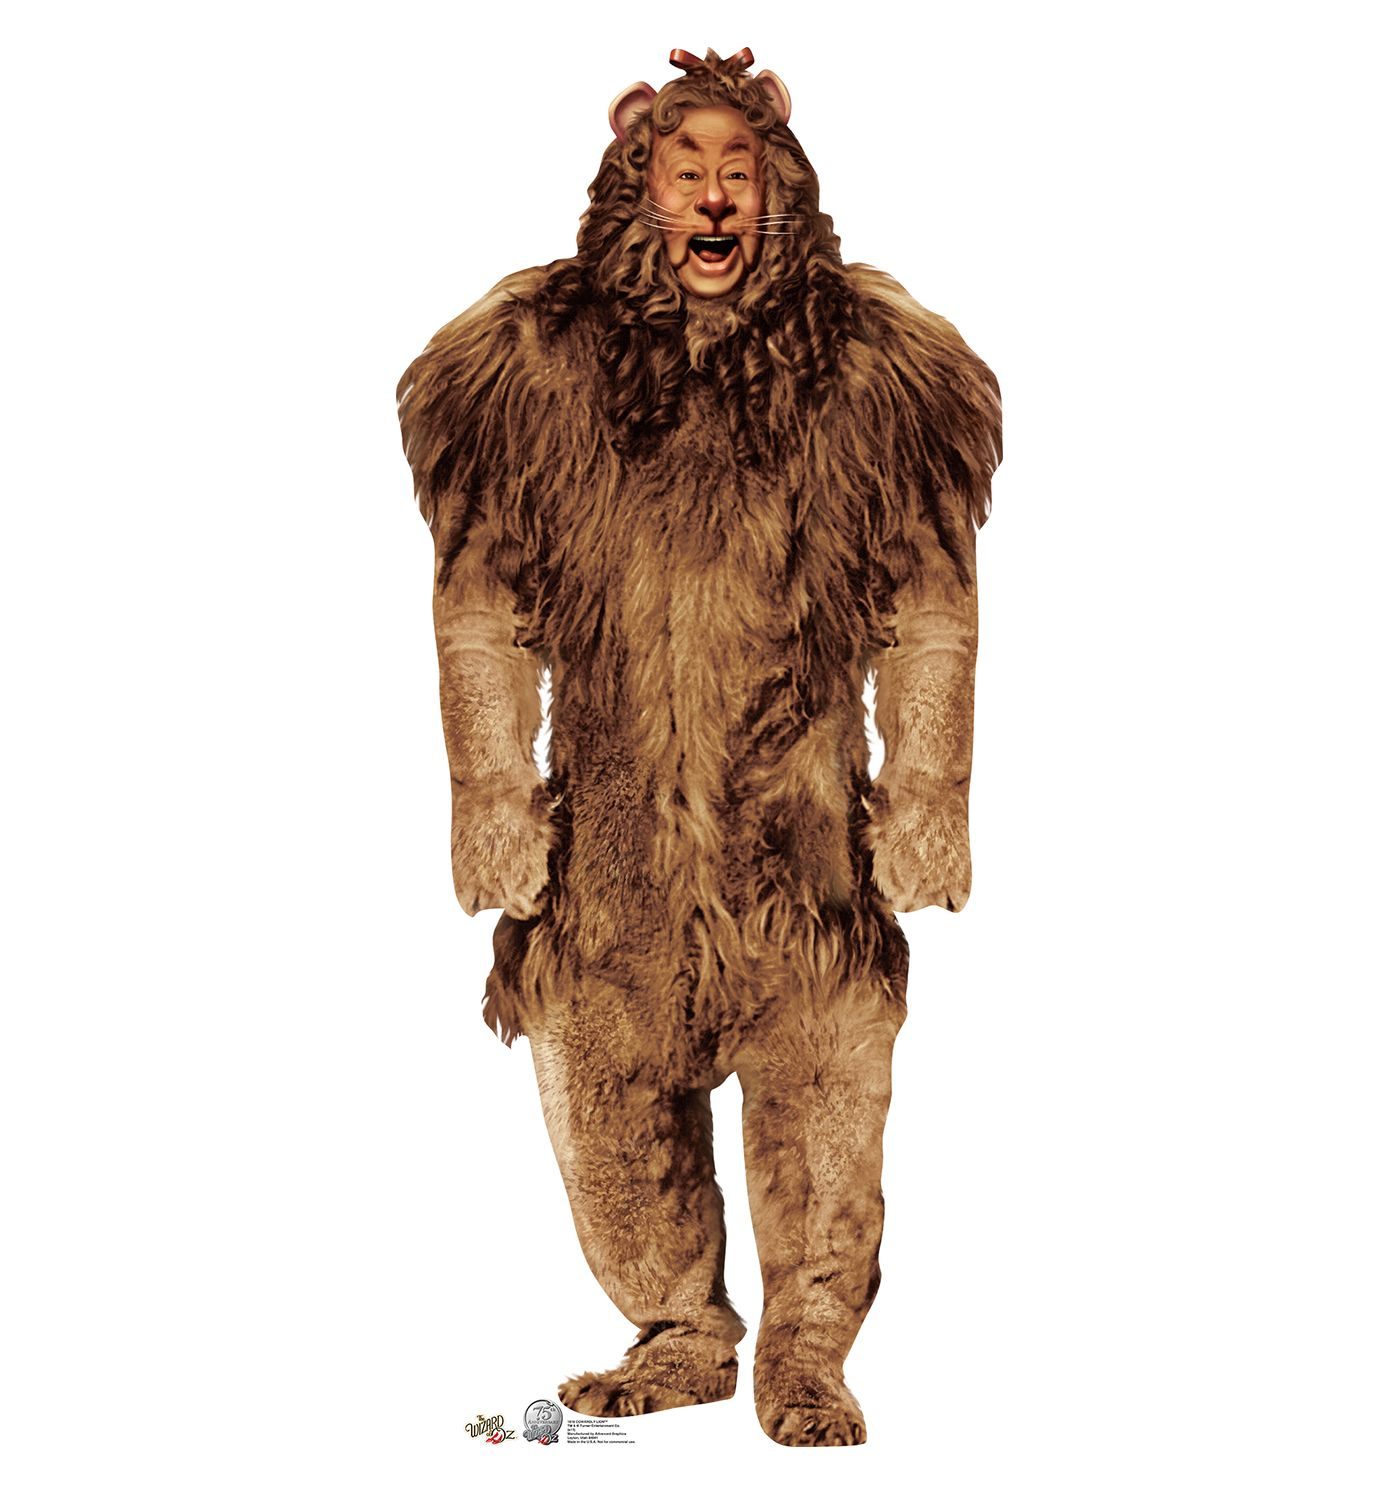 Cowardly Lion - Wizard of Oz | Cowardly lion